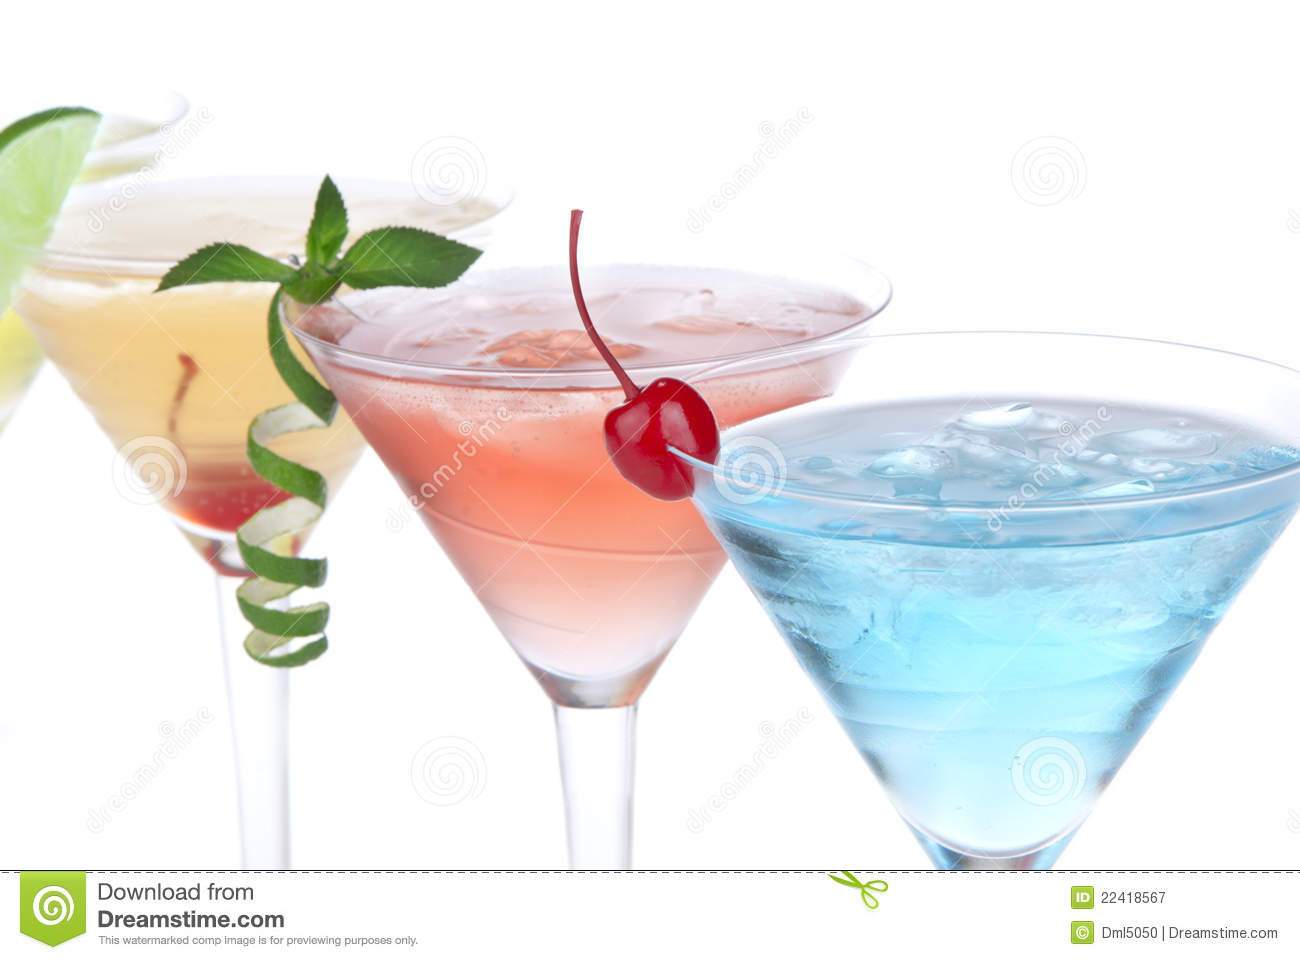 Tropical Drinks With Vodka  Tropical Martini Cocktails With Vodka Royalty Free Stock